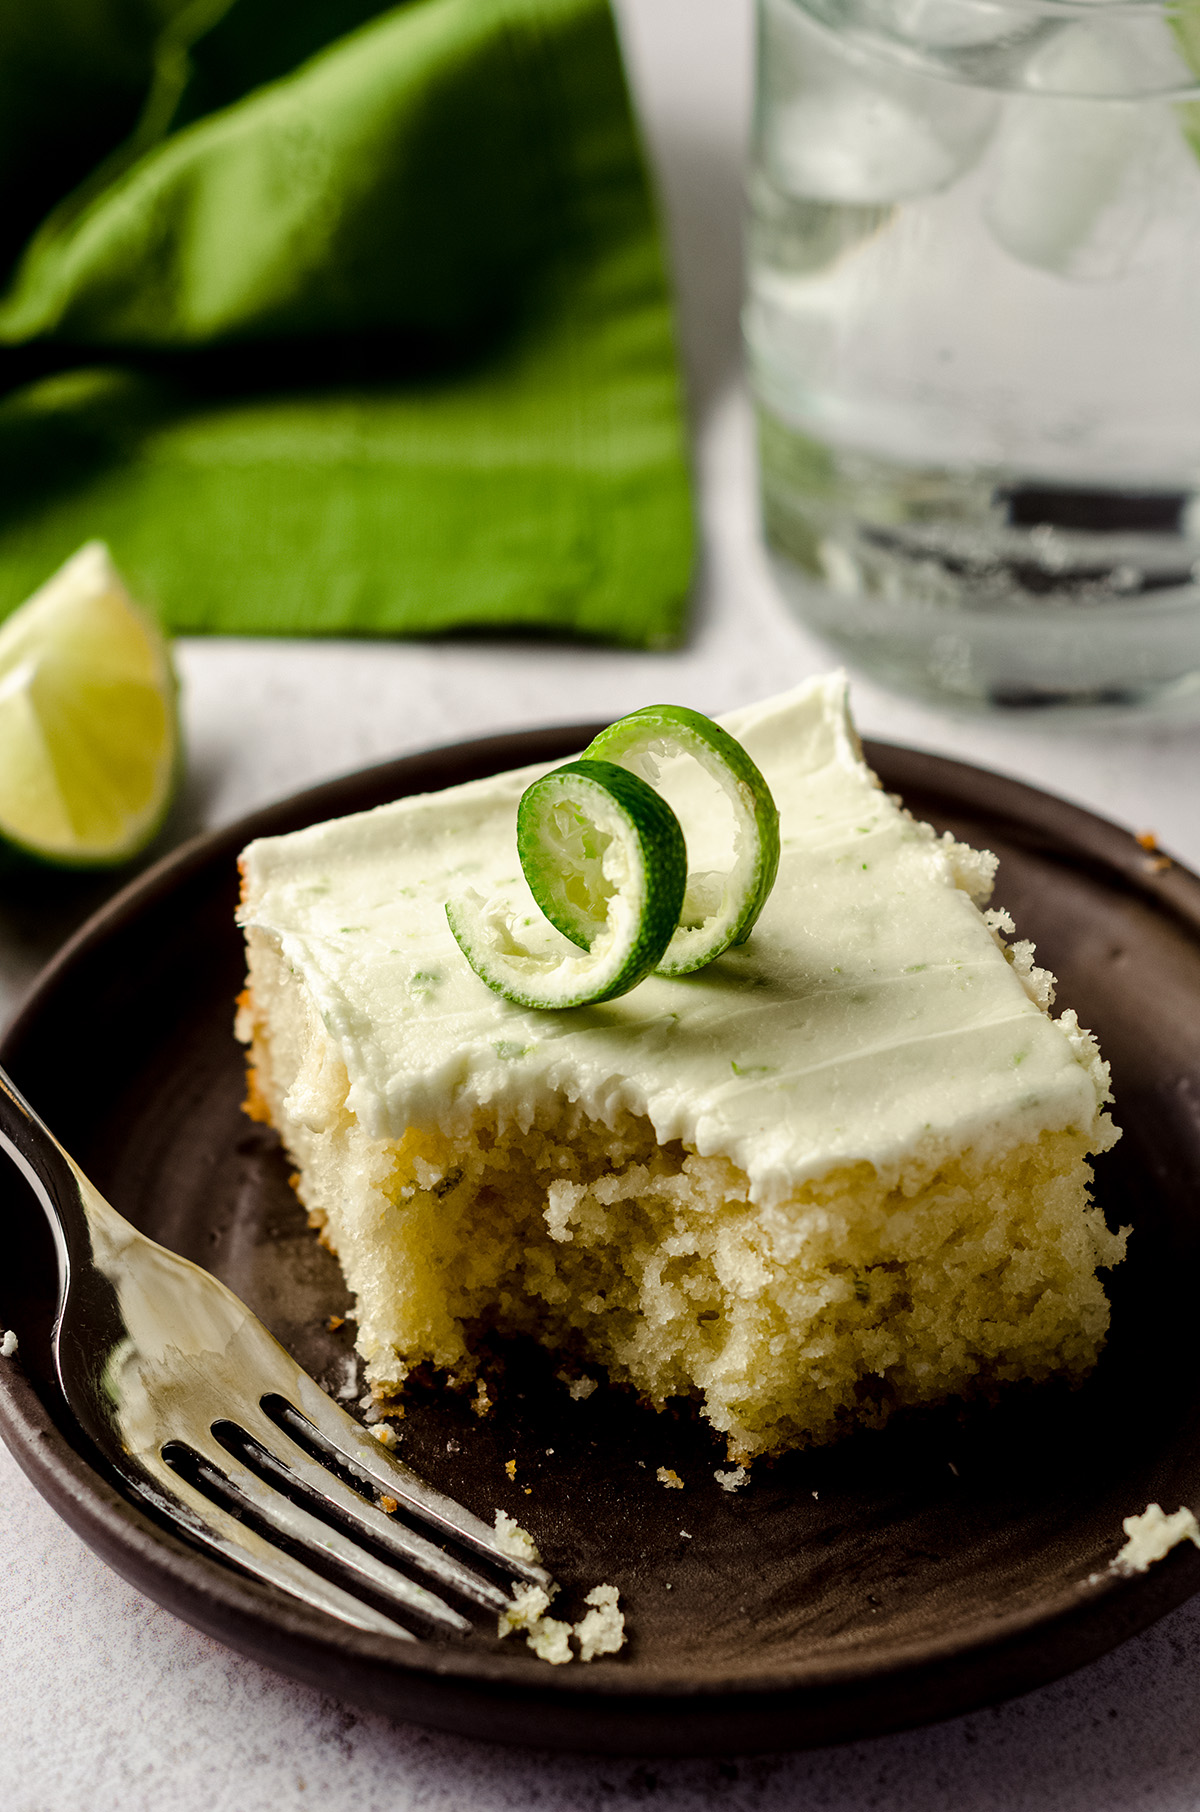 gin and tonic cake on a plate with a fork and a bite taken out of it